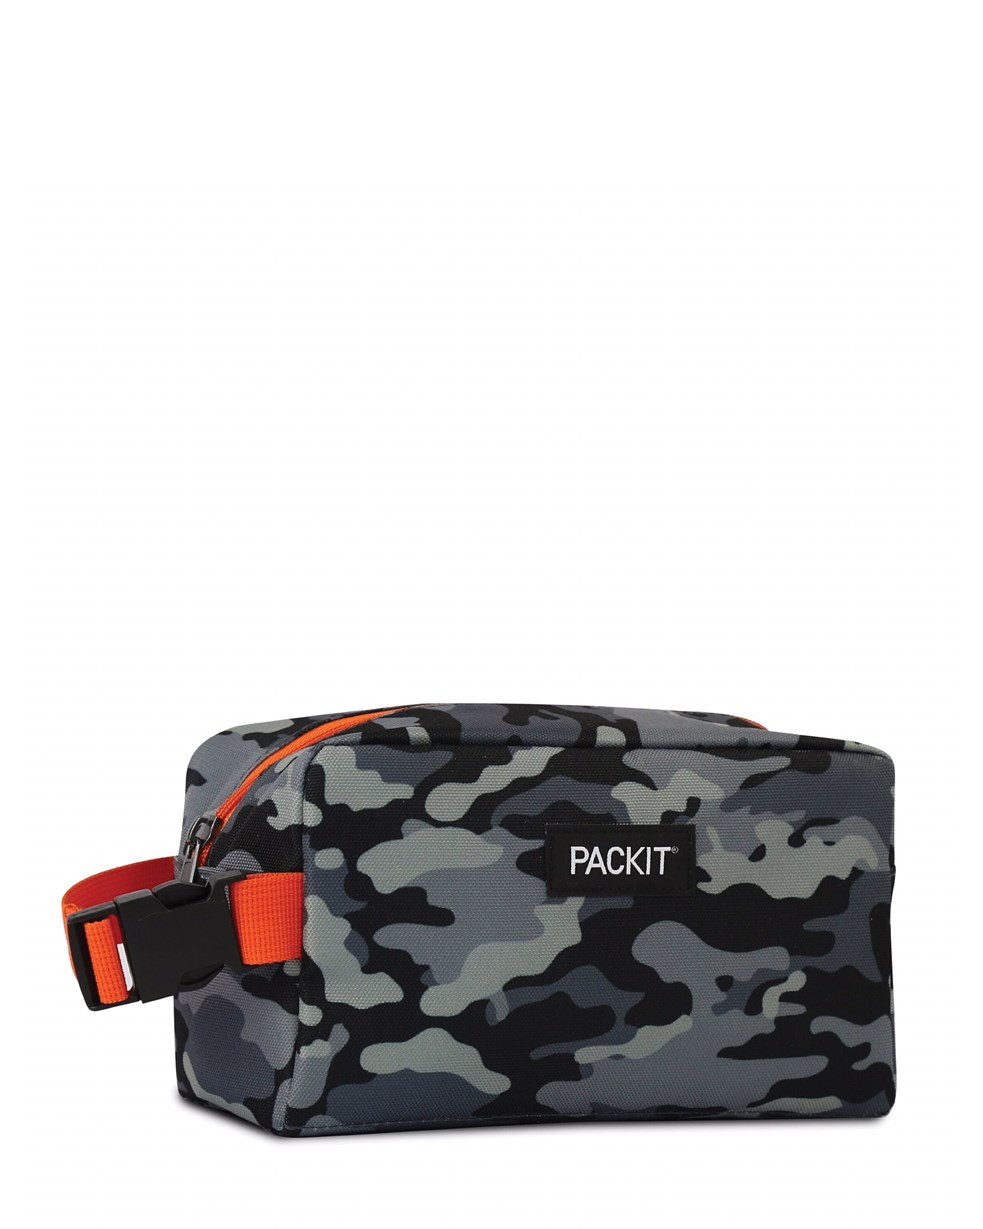 Packit Freezable Snack Box - Charcoal Camo